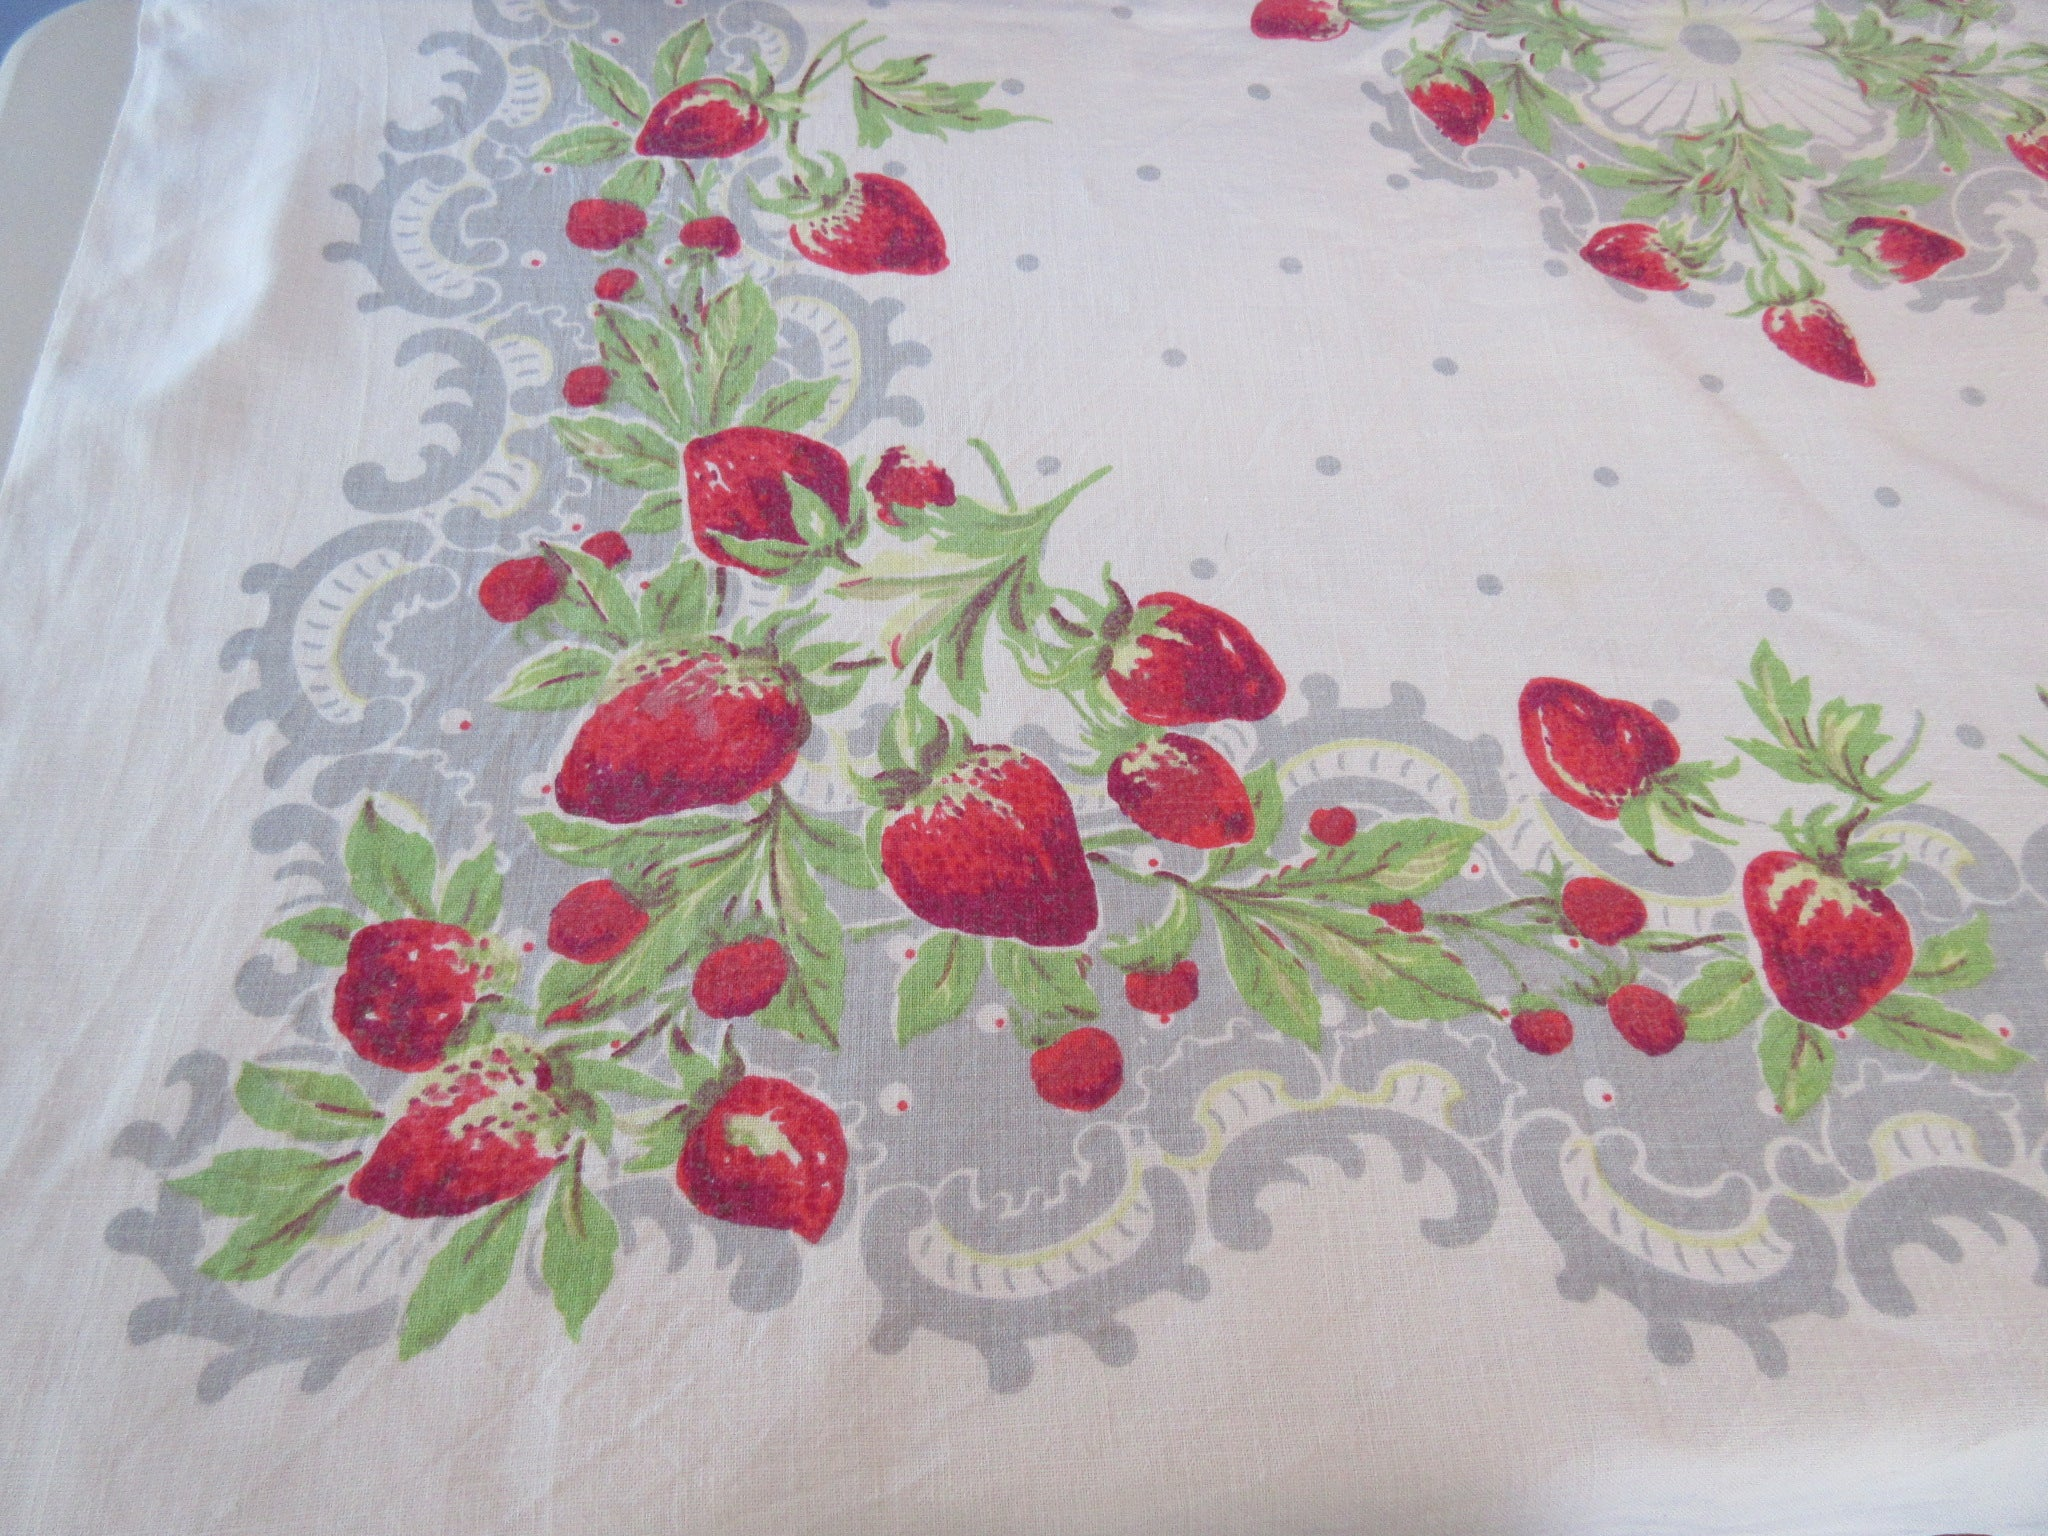 Strawberries on Gray Lace Linen Fruit Vintage Printed Tablecloth (53 X 50)